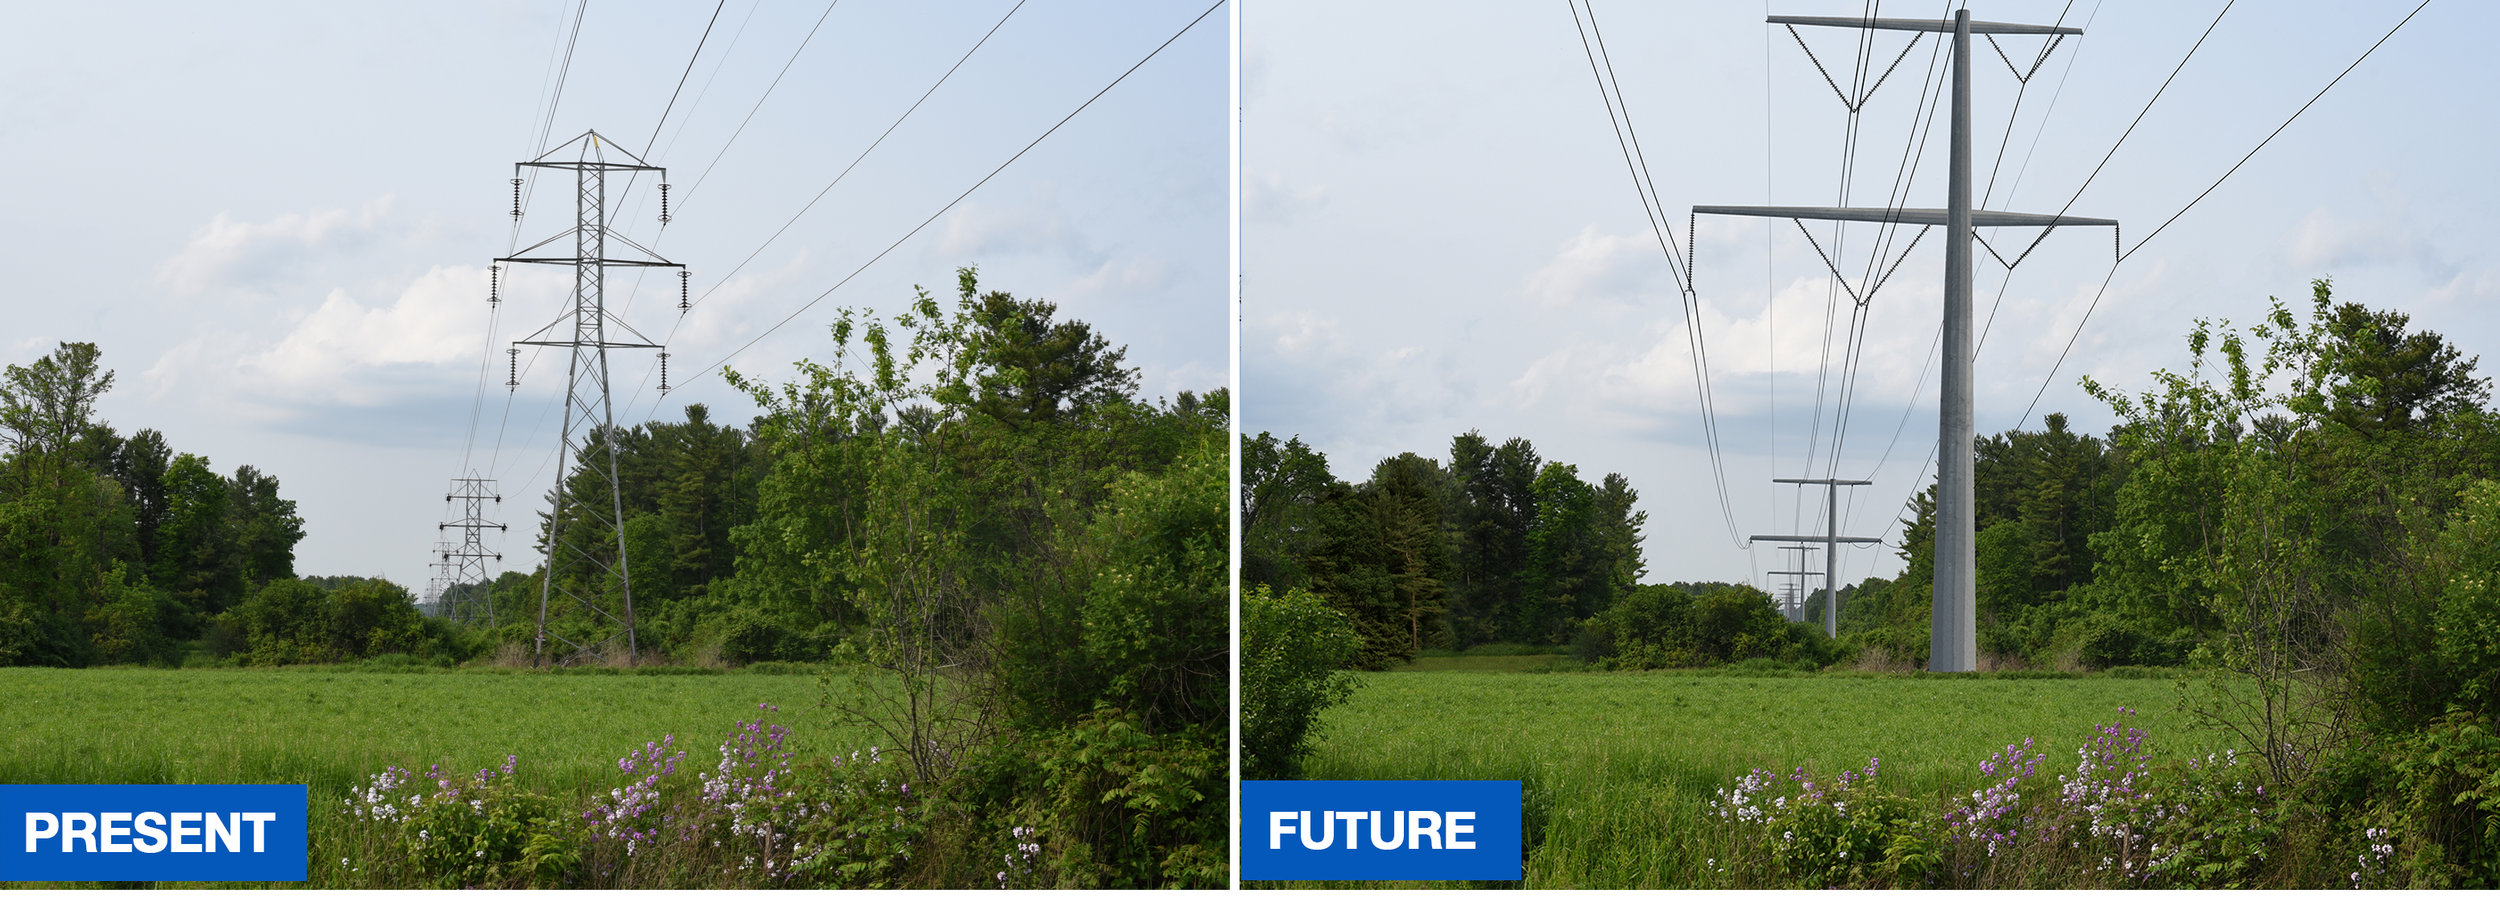 These photos represent what will take place on 6.4 miles of the Claverack route. For illustrative purposes only.